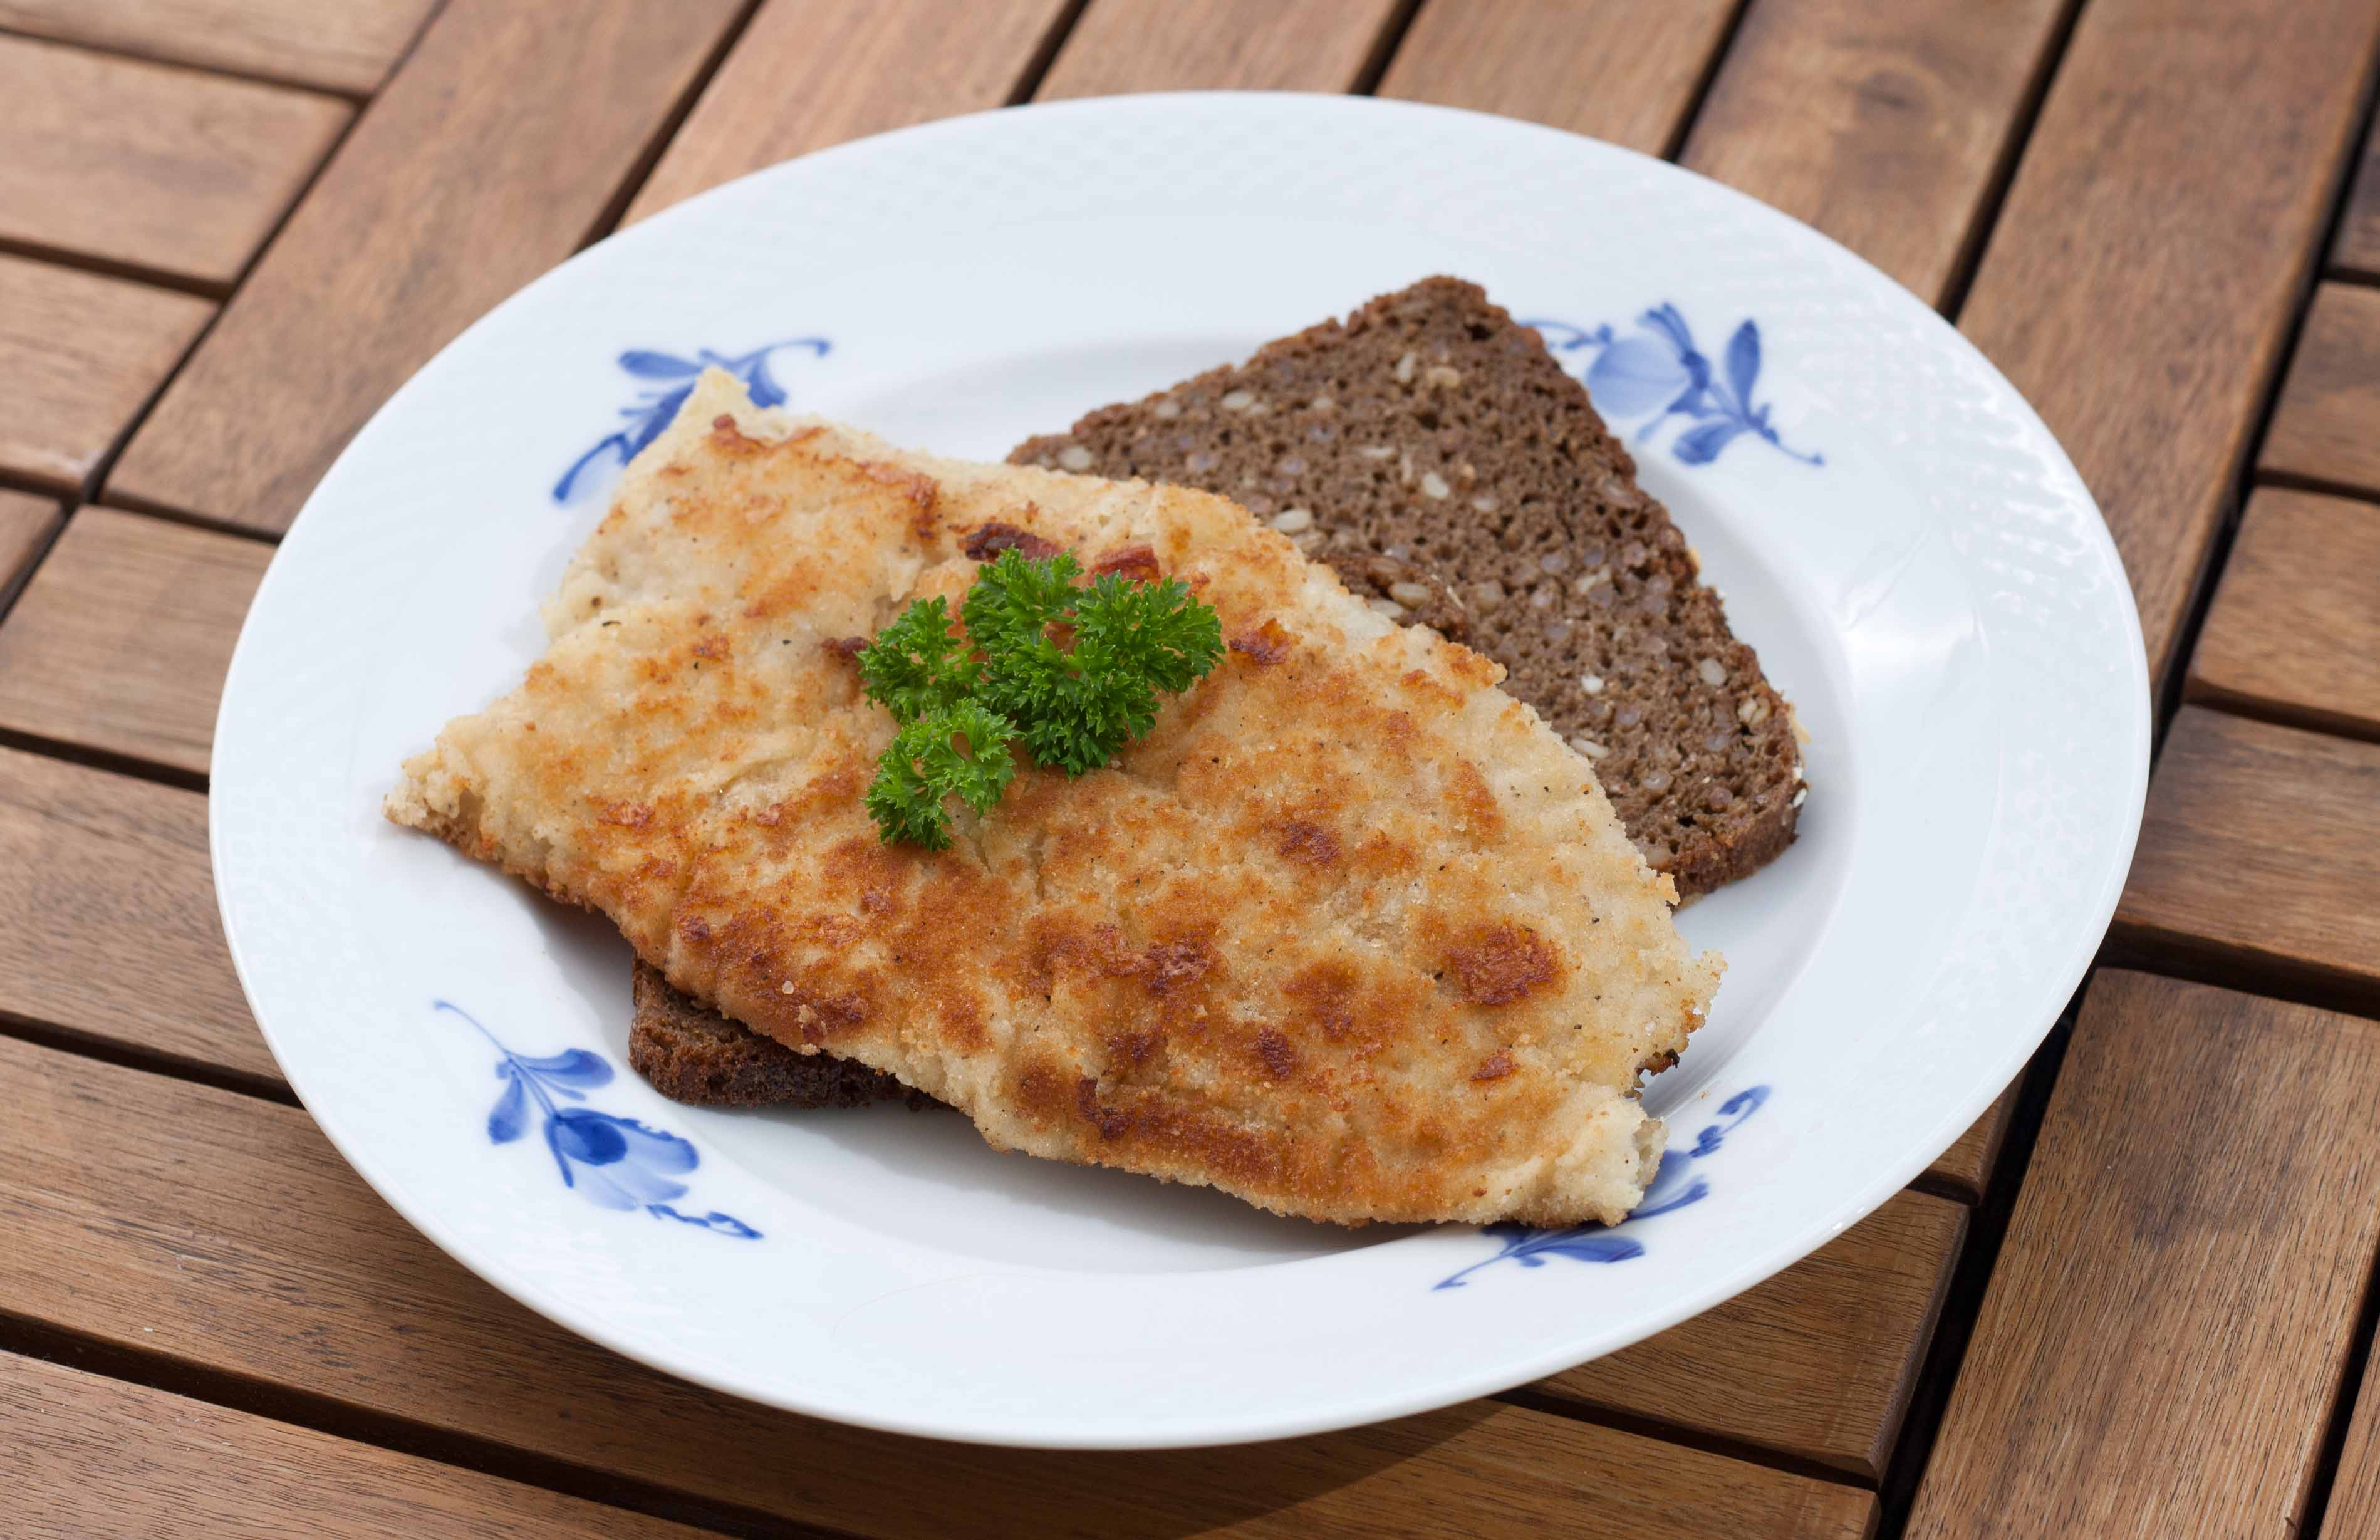 Pan-Fried Coalfish with Rye Bread